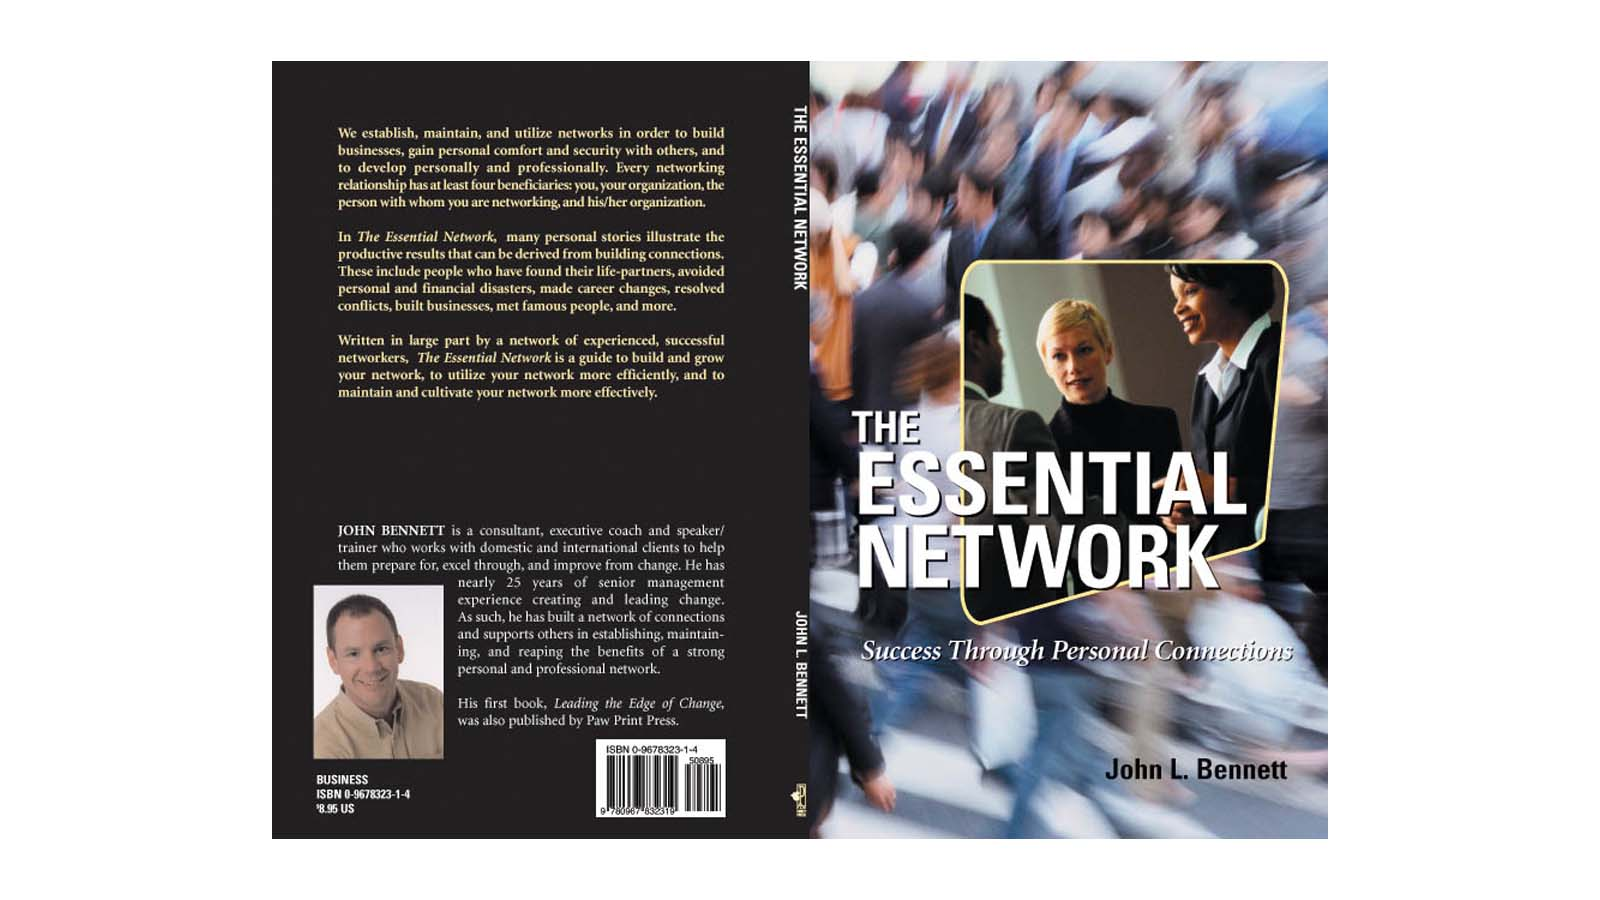 The Essential Network